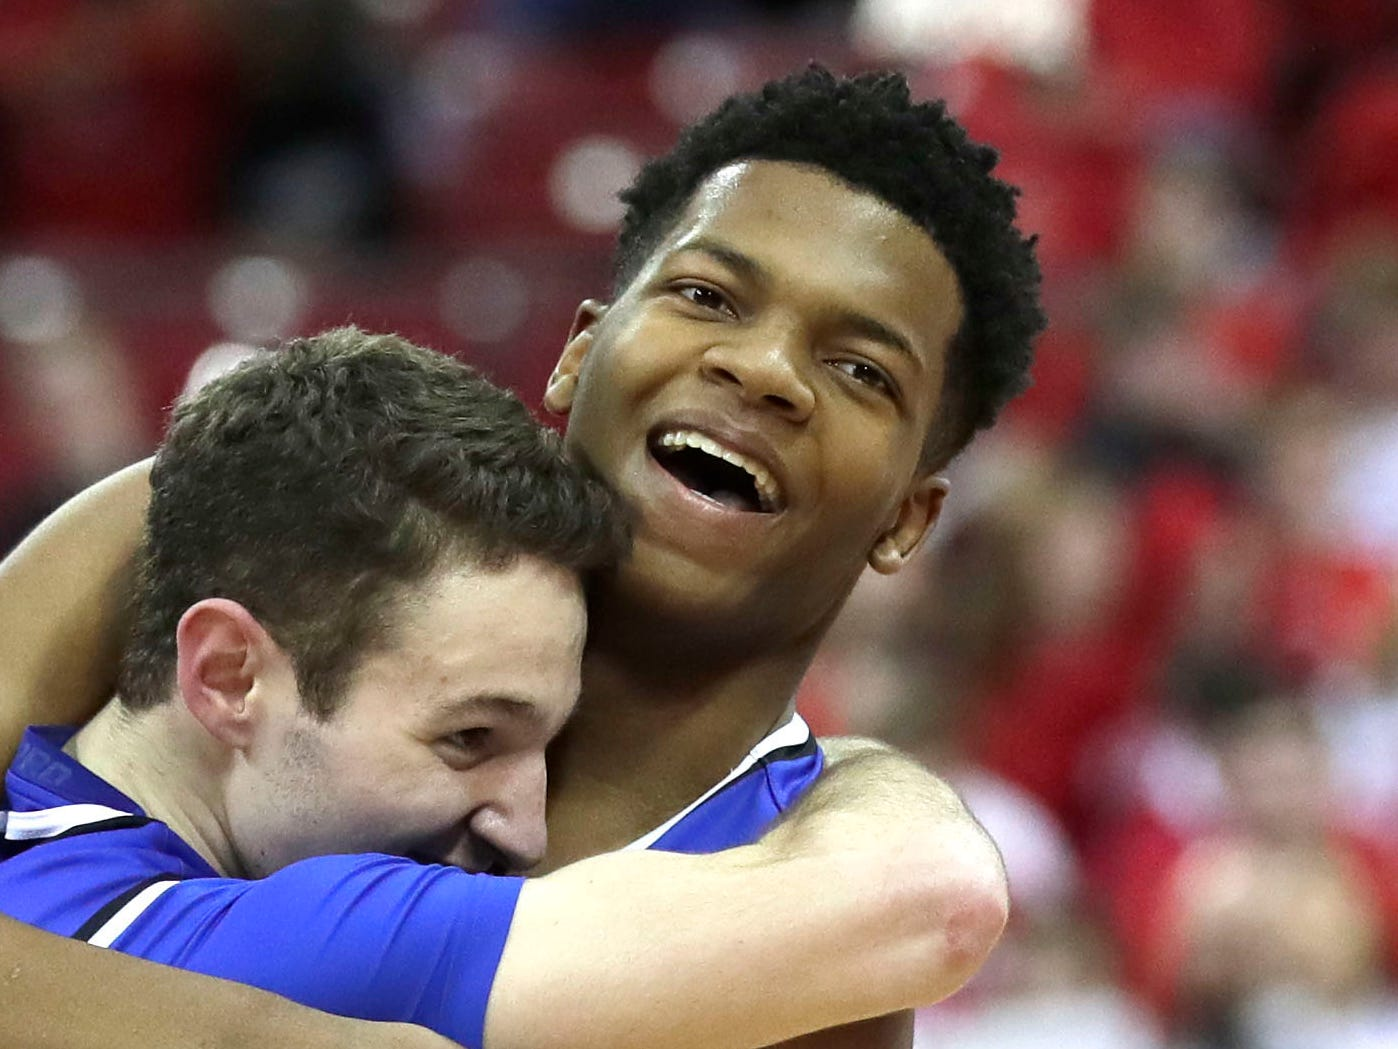 David Joplin (right) hugs teammate Cole Nau as they celebrate Brookfield Central's 69-52 victory over Sun Prairie in the WIAA Division 1 state championship game Saturday, March 16, at the Kohl Center in Madison.